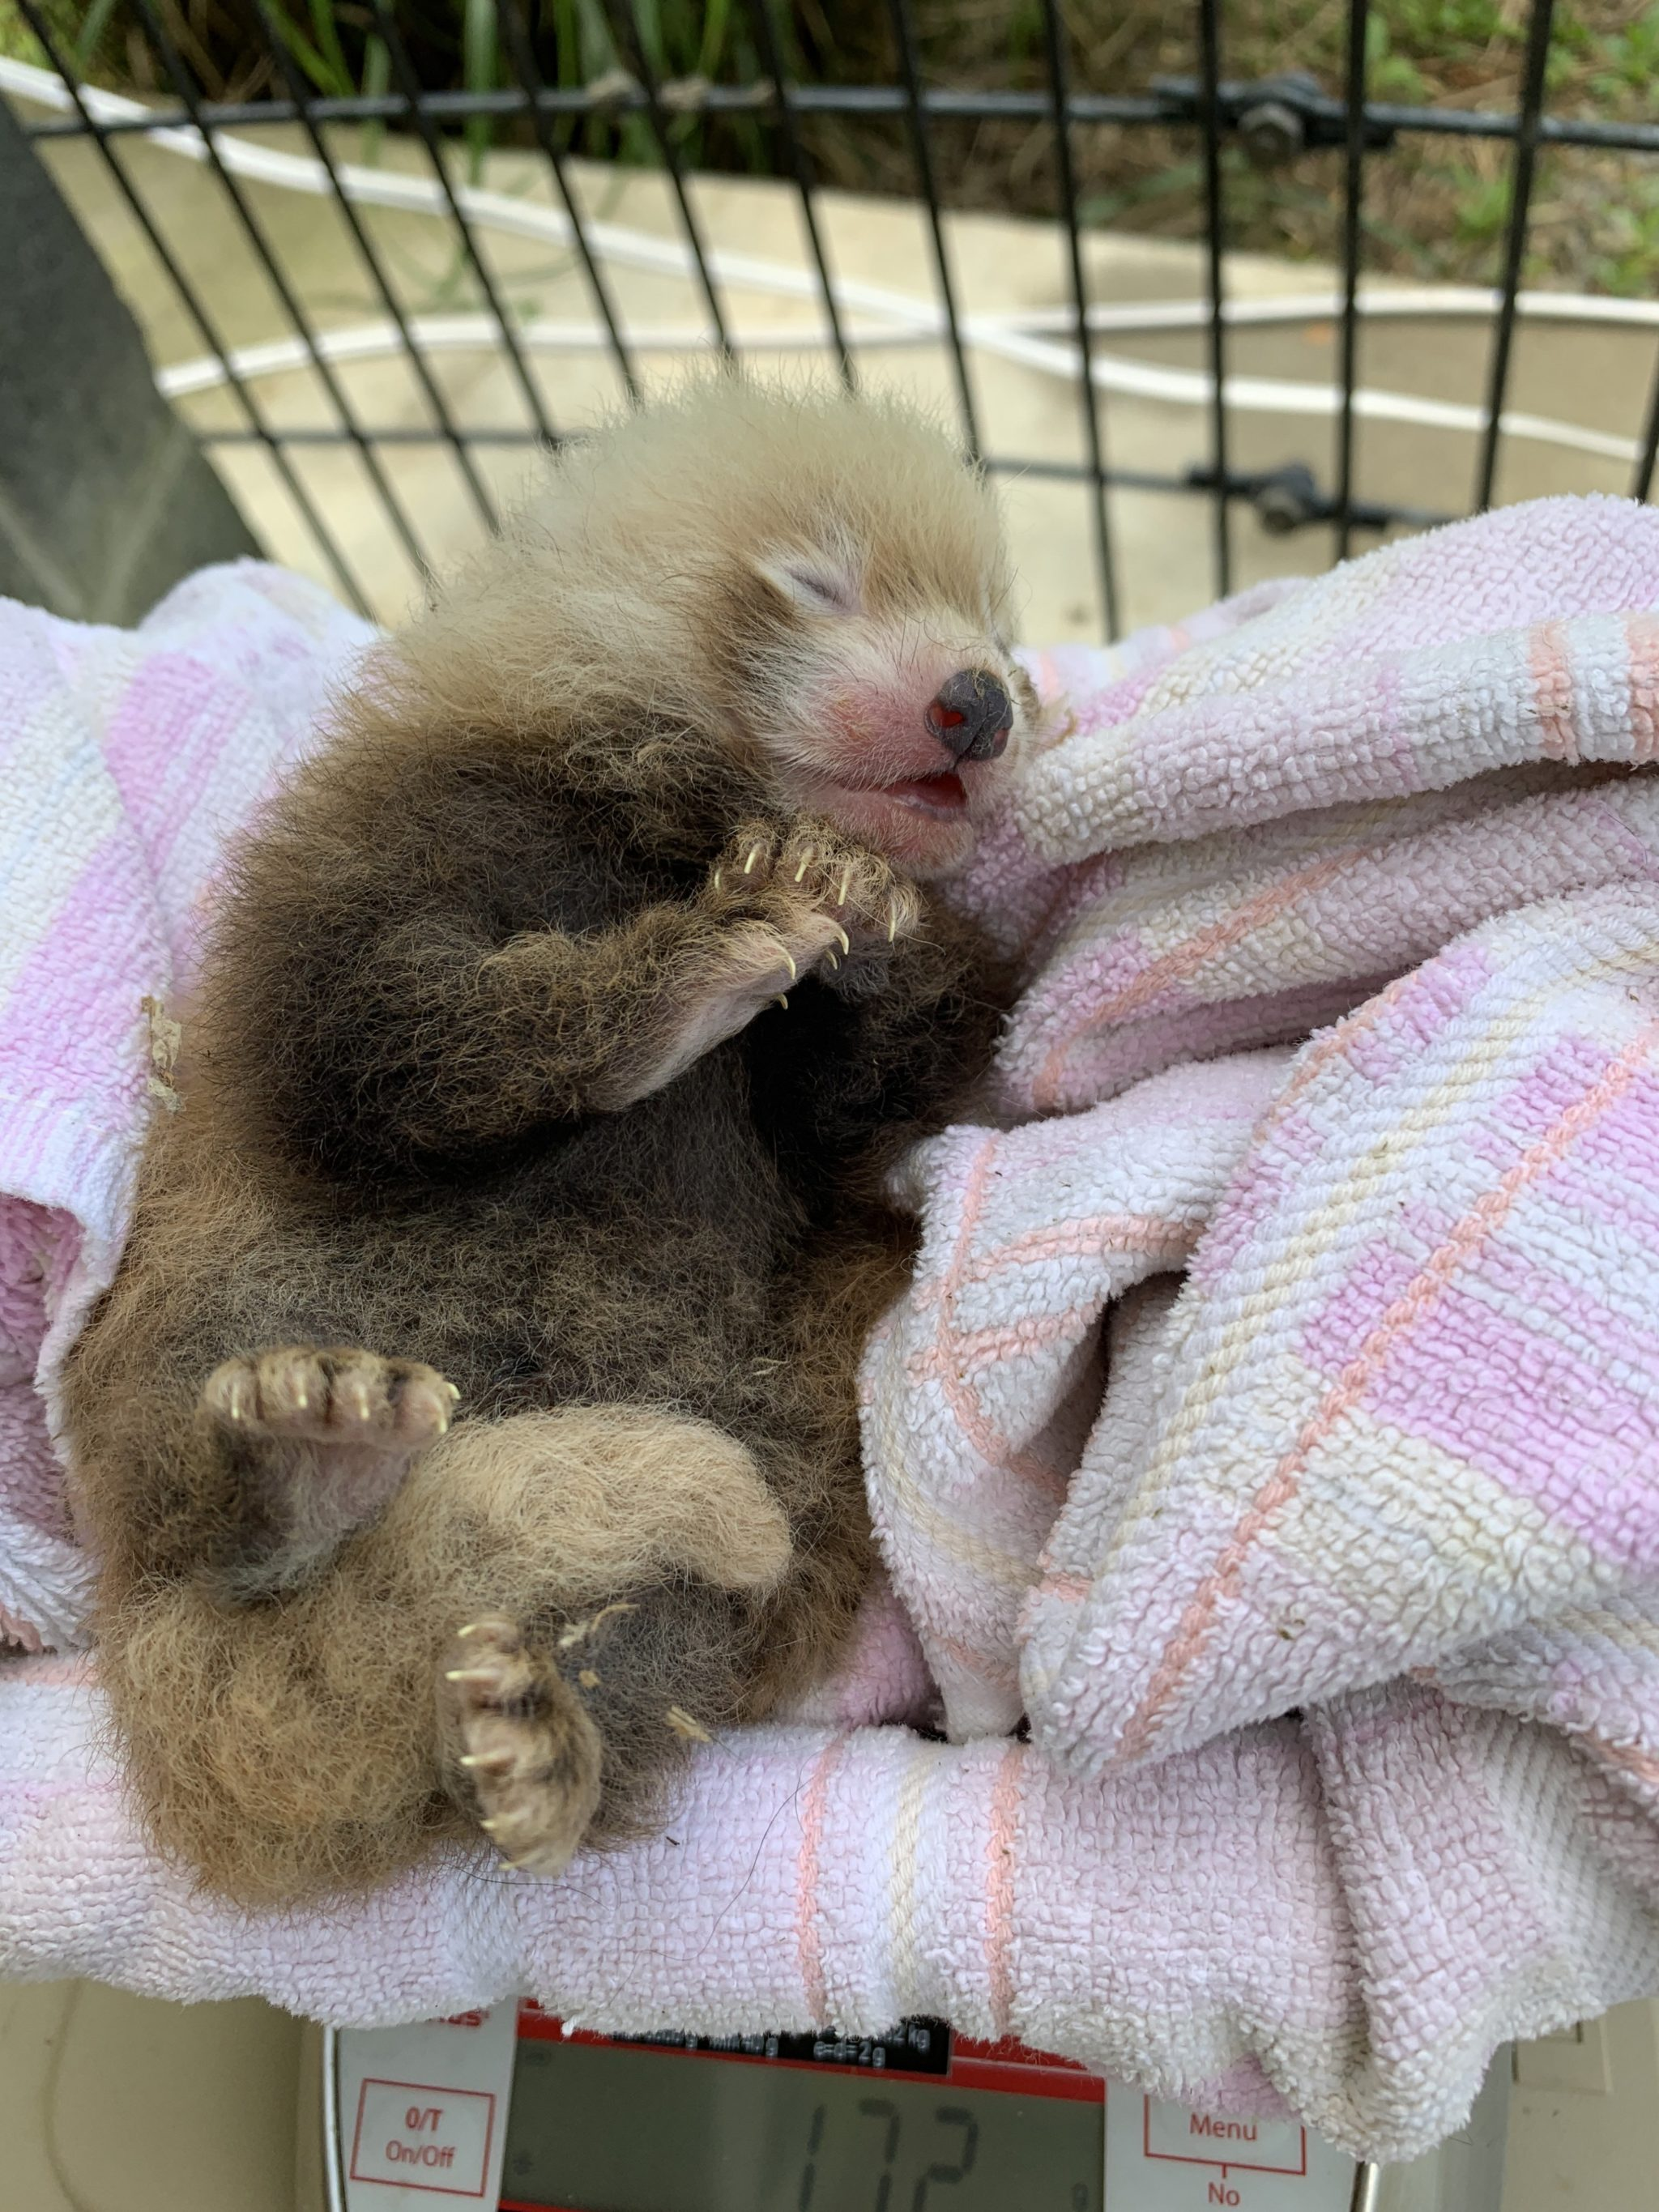 Let Us Now Appreciate the Smithsonian's New Red Panda Cub